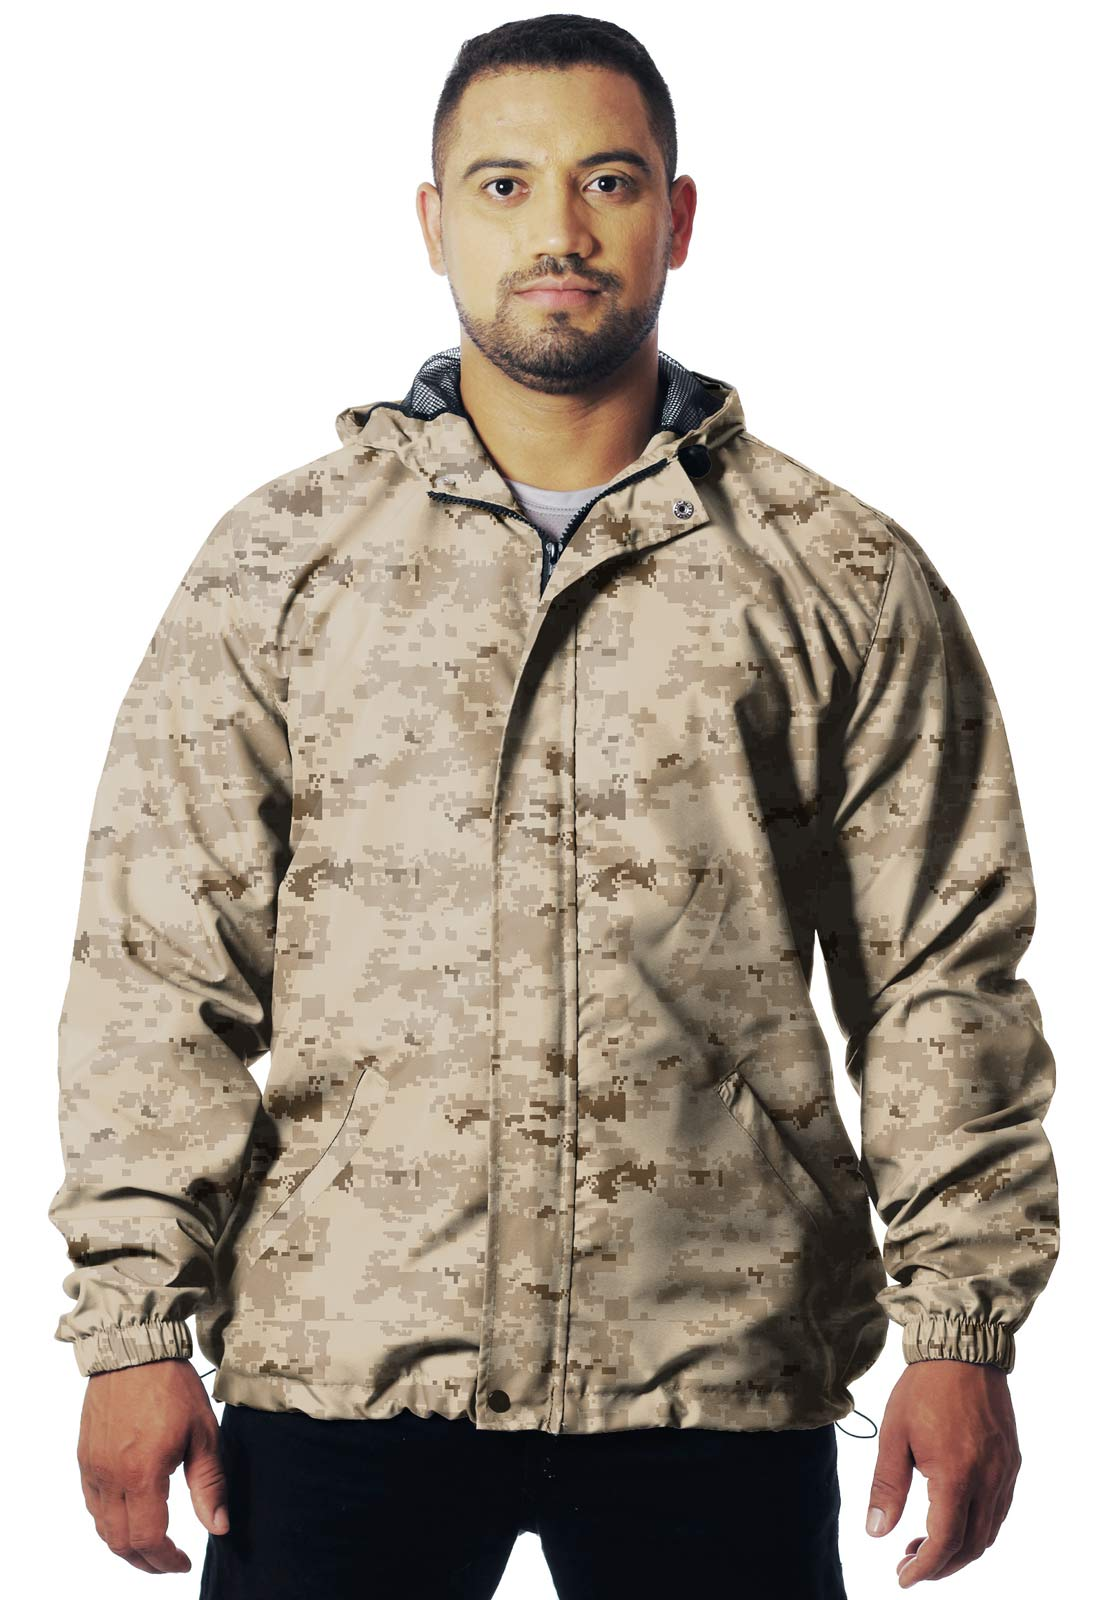 JAQUETA CORTA VENTO CAMUFLADA DESERTO MASCULINA  - REAL HUNTER OUTDOORS